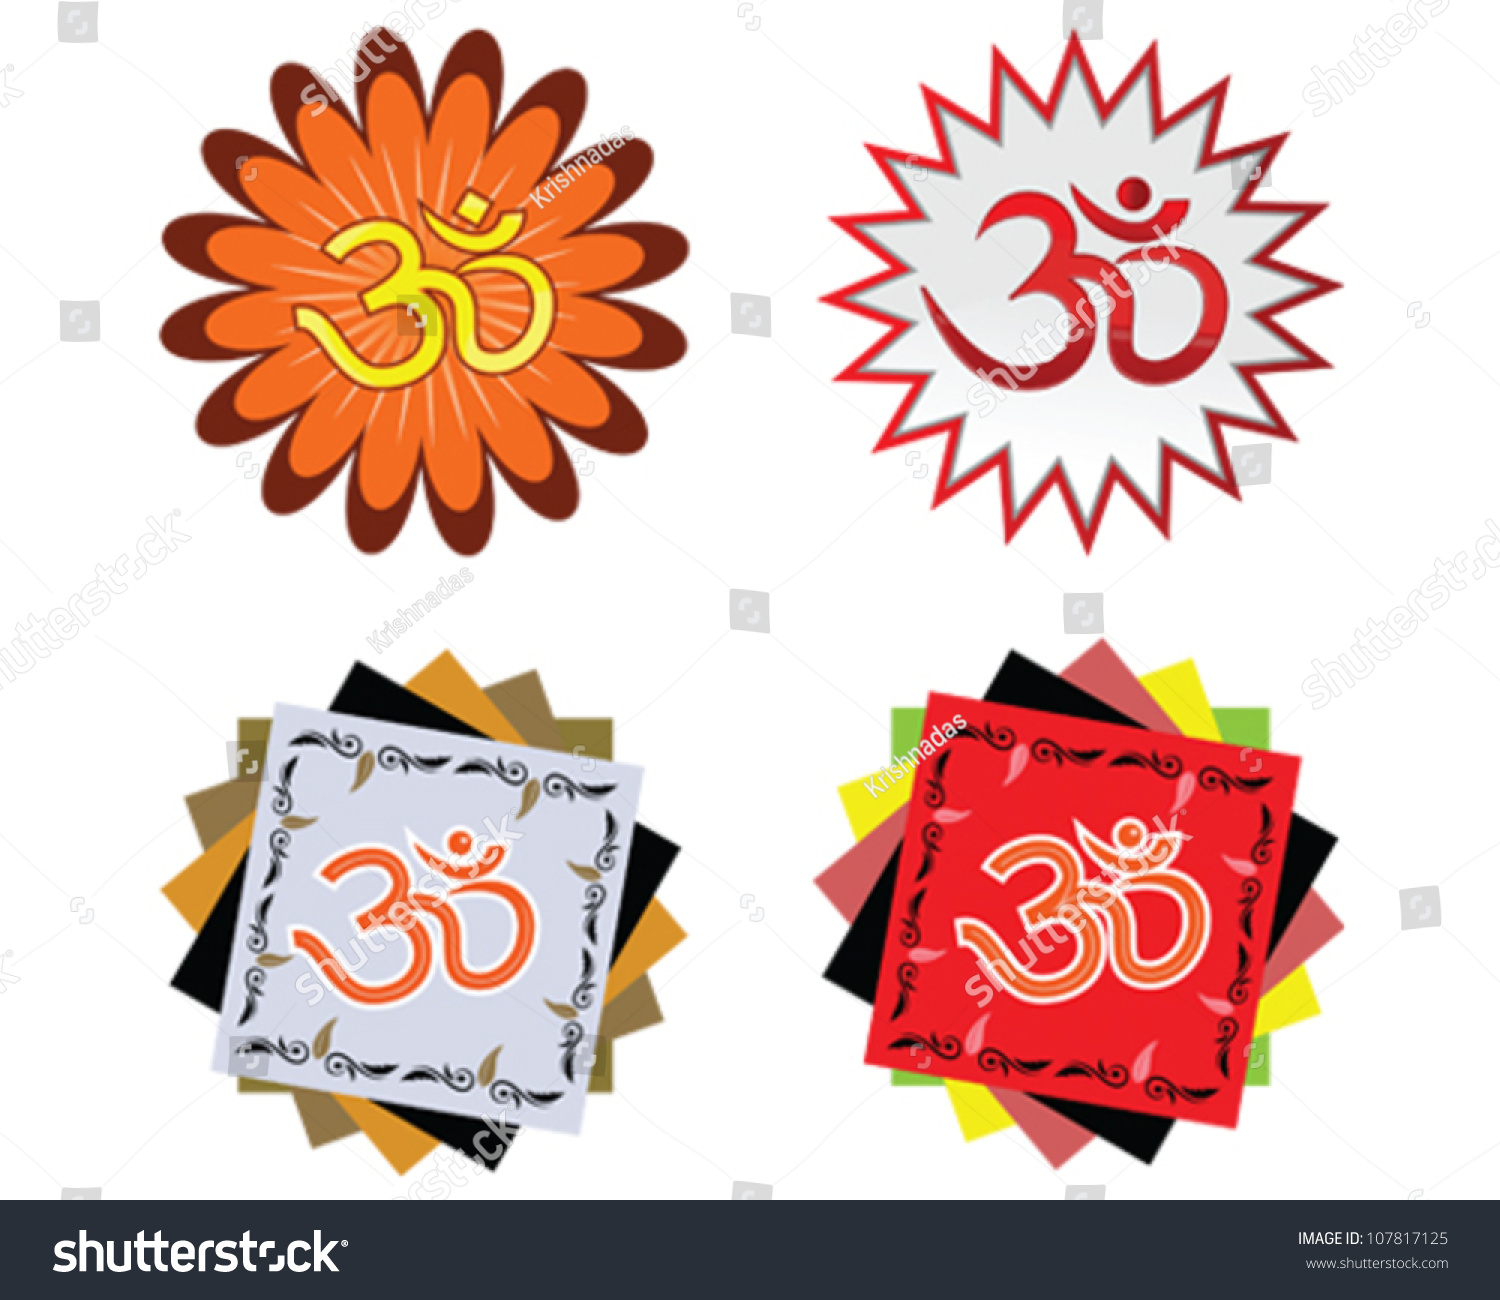 Hindu religion symbol ohm stock vector 107817125 shutterstock hindu religion symbol ohm buycottarizona Image collections